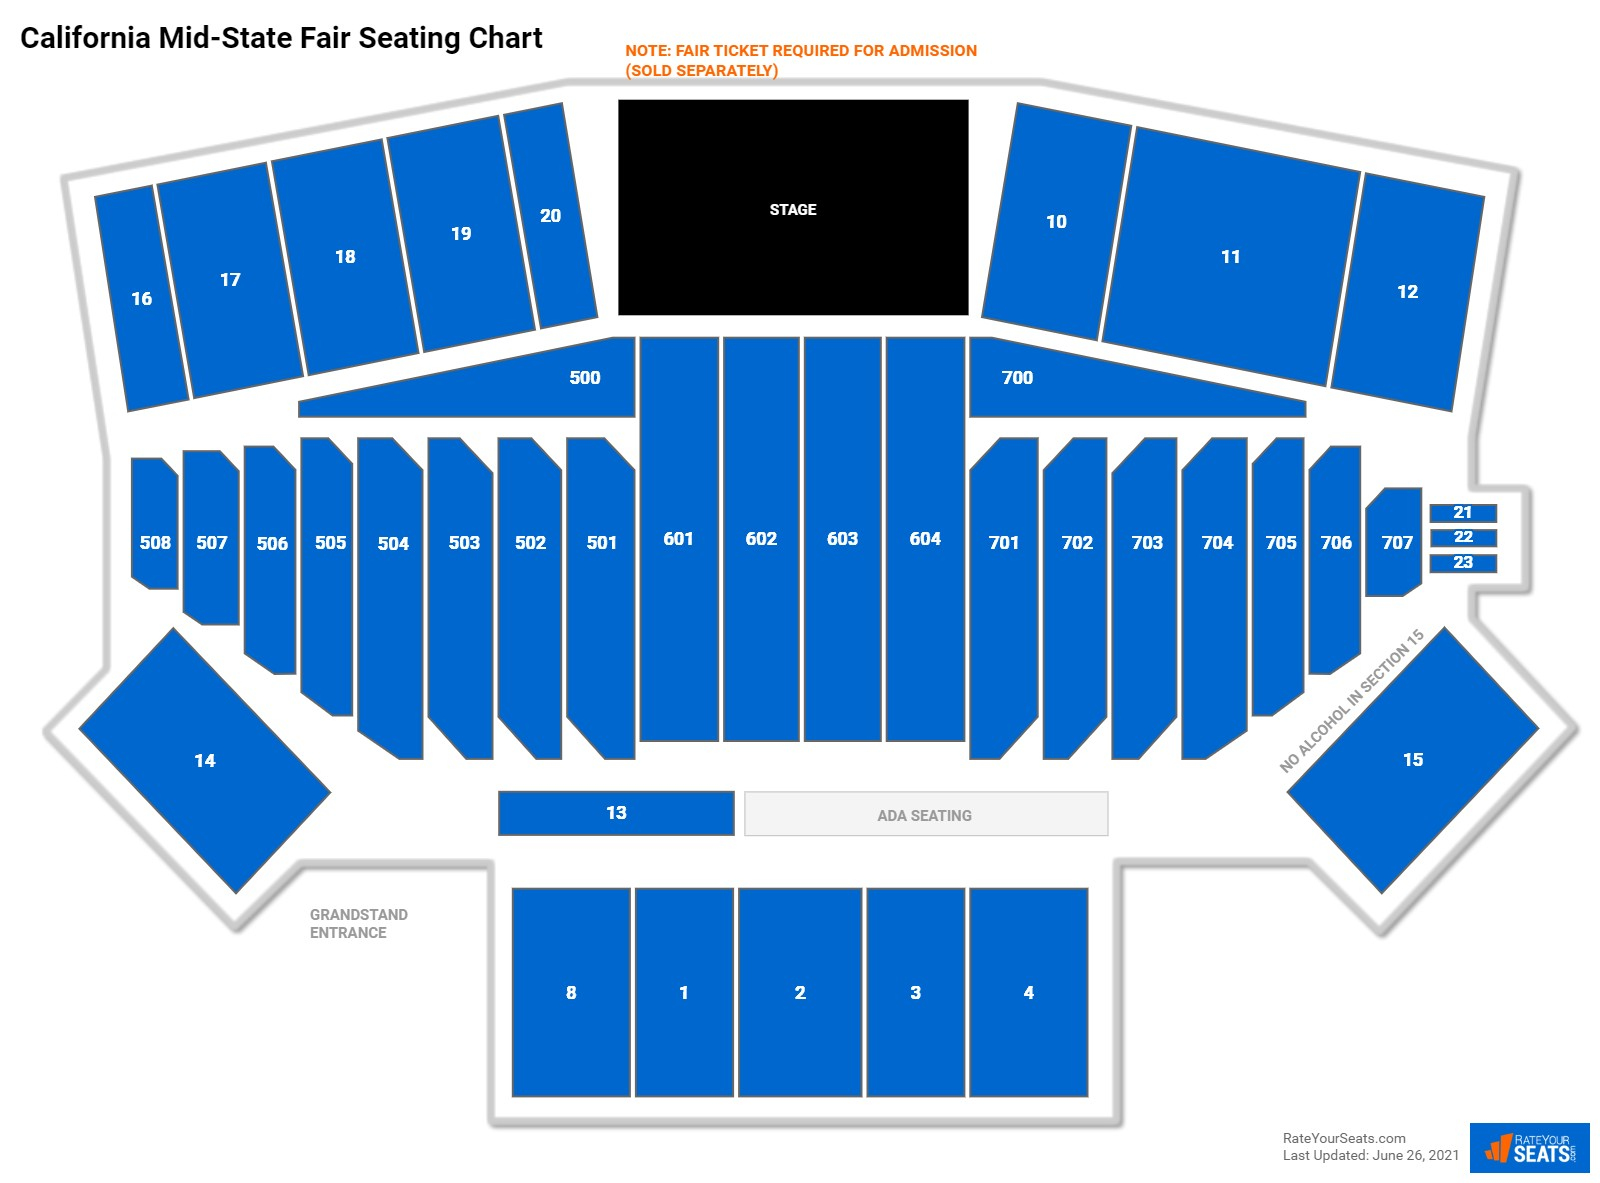 California Mid State Fair Seating Chart Rateyourseats Com